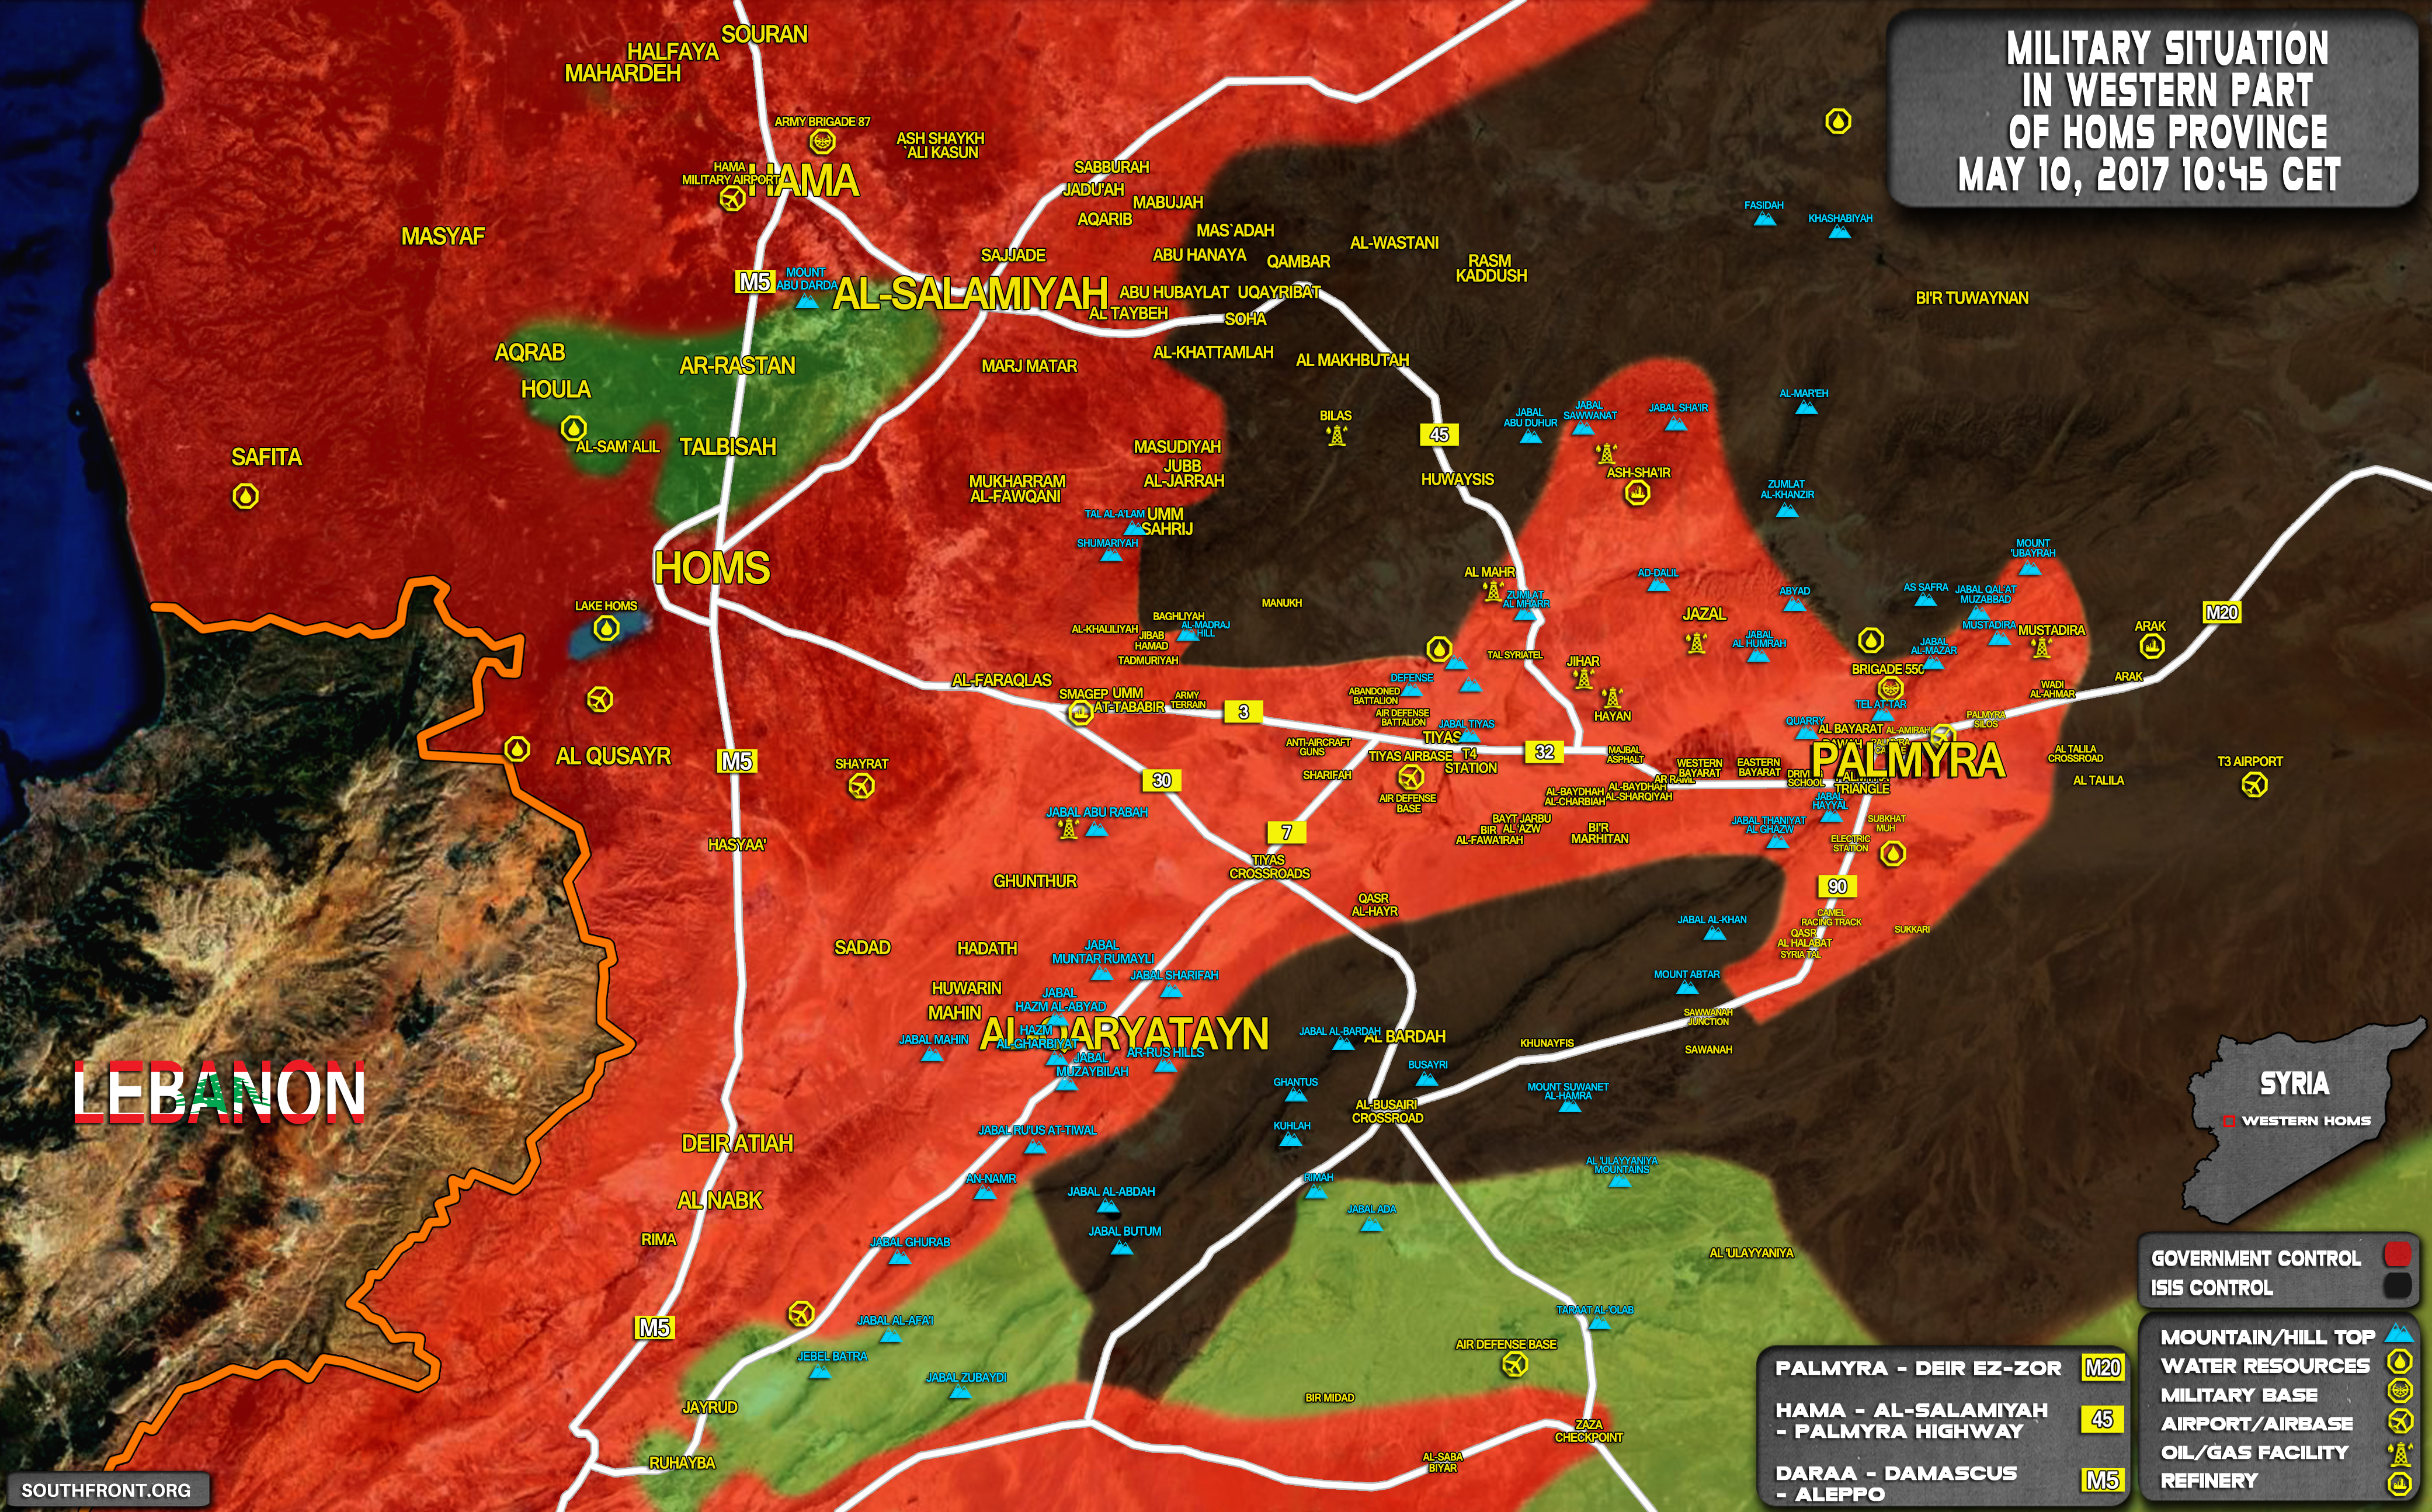 Counter-Offensive Of Western-Backed Militants Southeast Of Damascus Failed